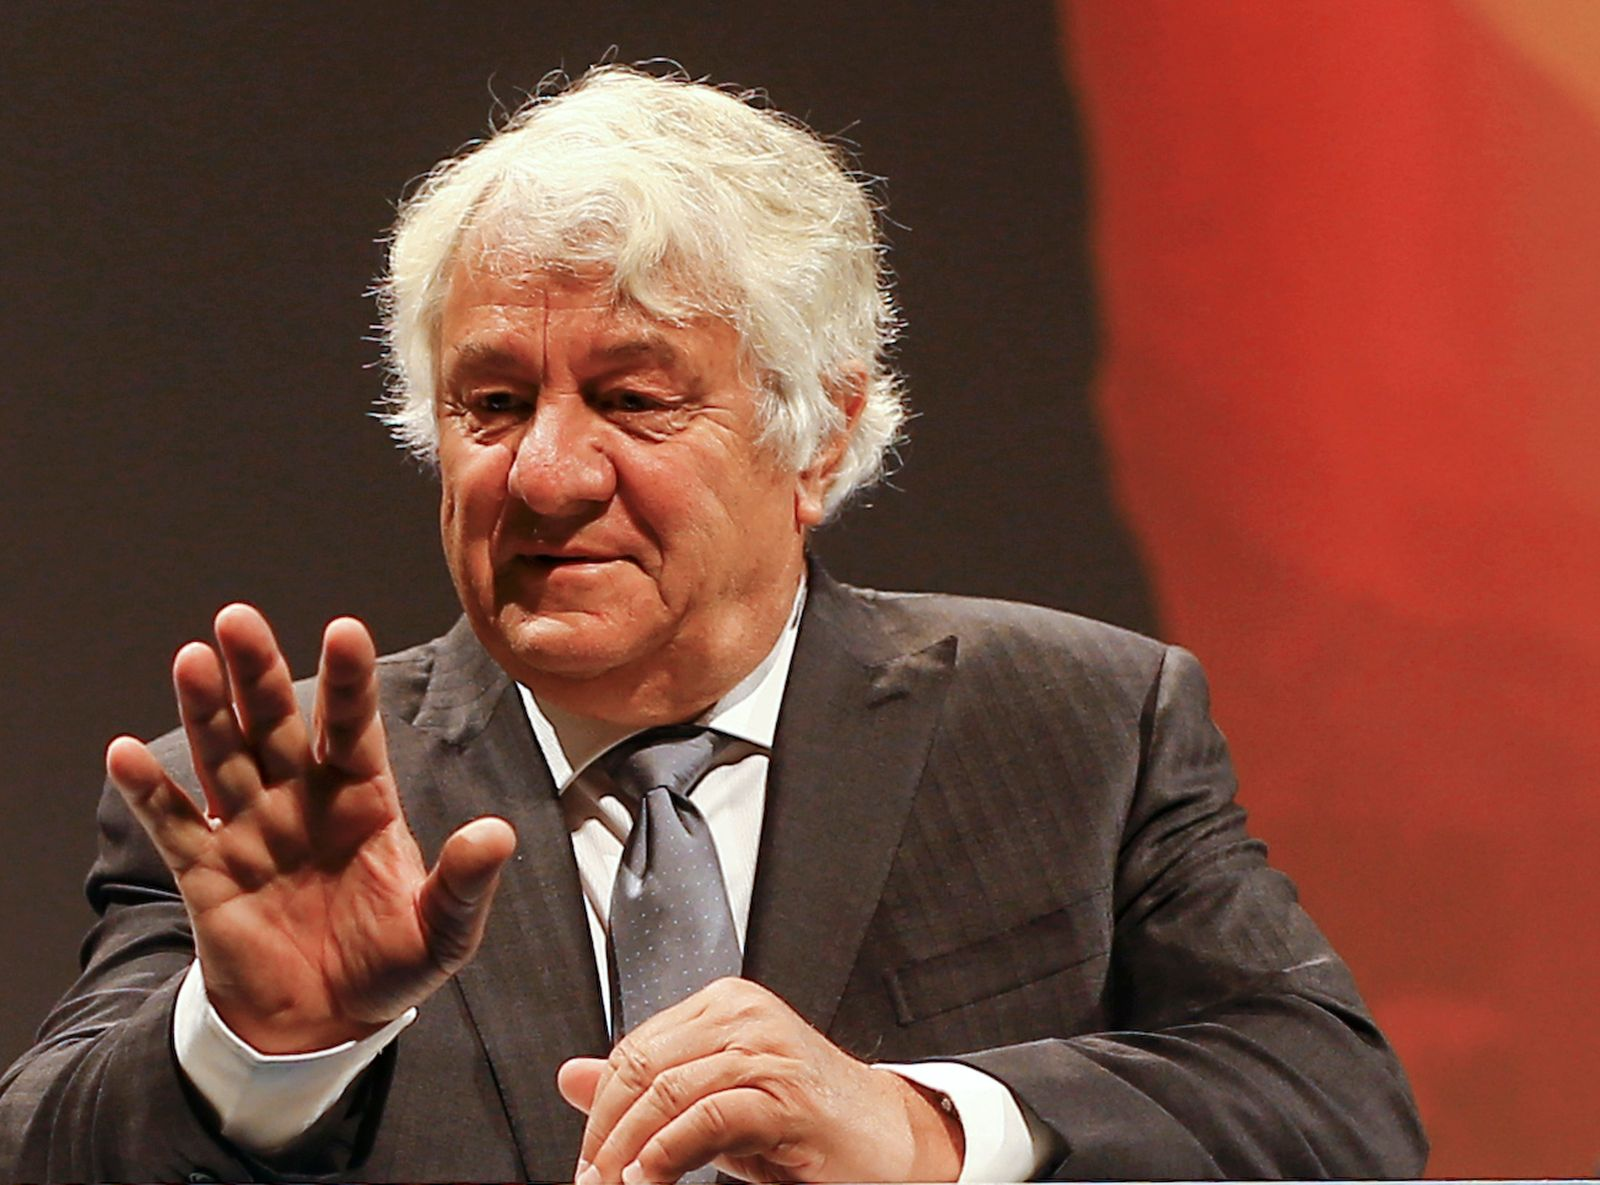 SAP Chairman of the Supervisory Board Plattner gestures before the SAP annual general meeting in Mannheim